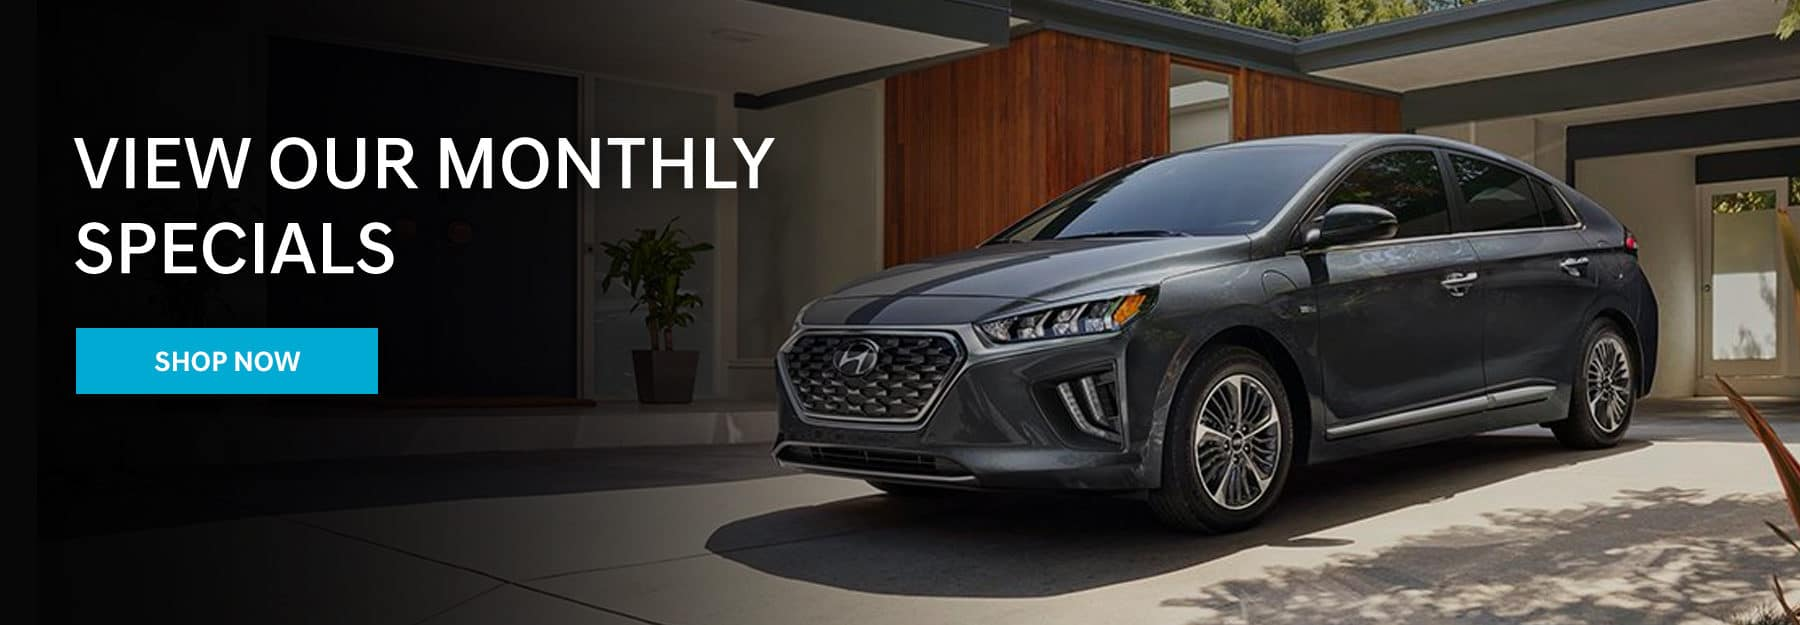 View Monthly Offers at Patrick Hyundai in Schaumburg, IL